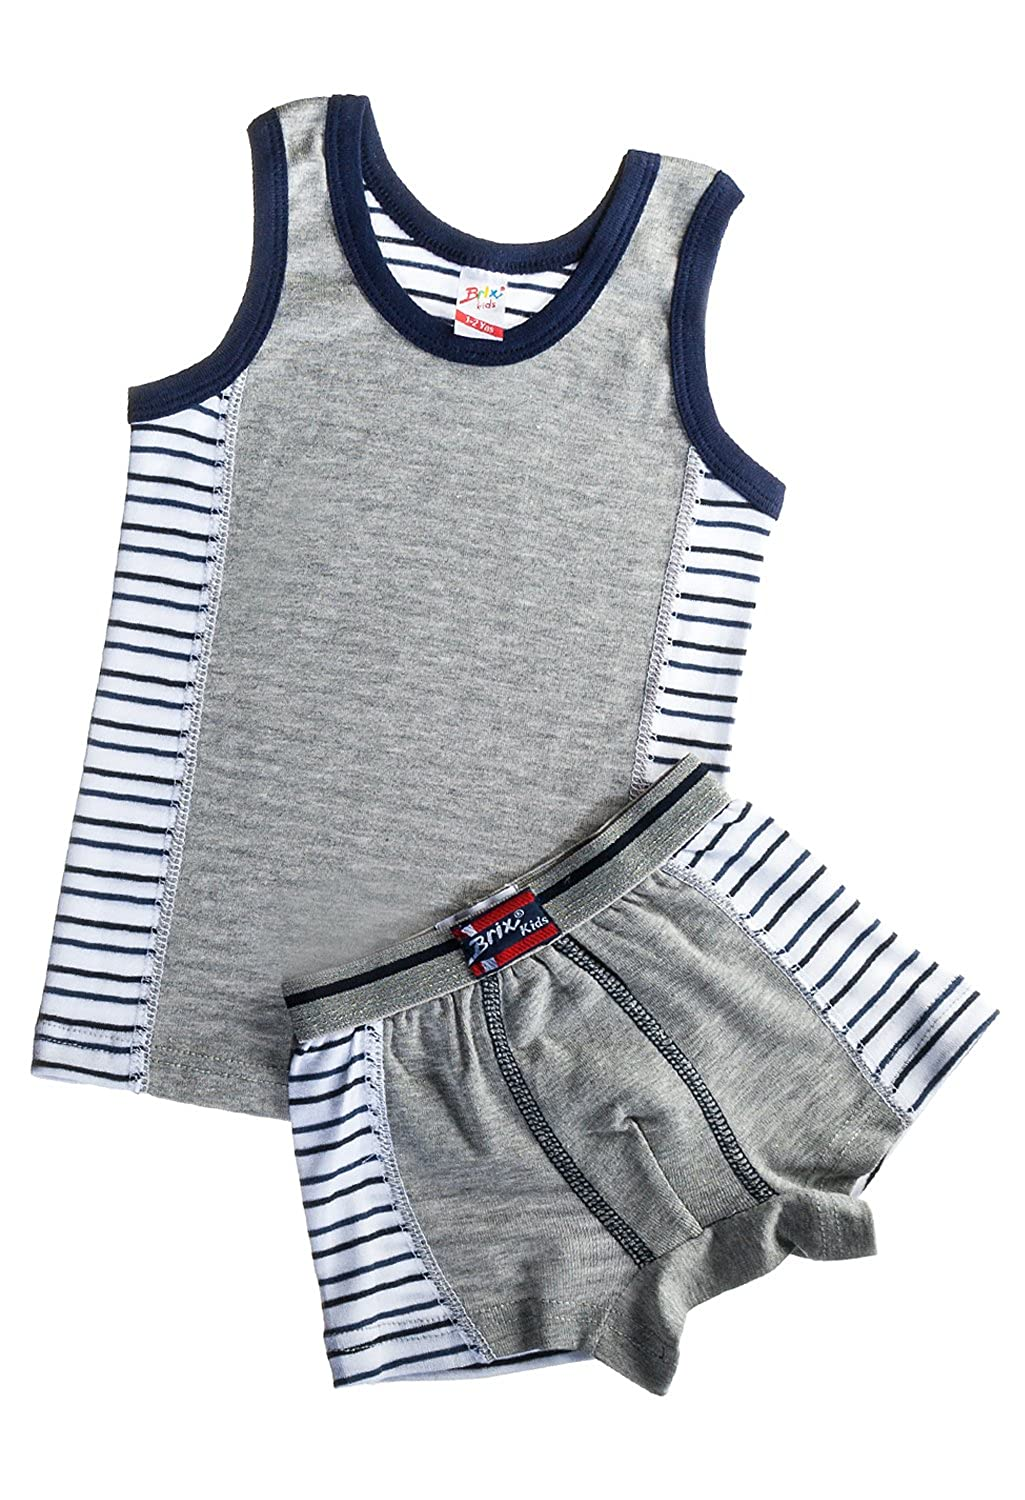 Kids by Brix Soft Turkish Cotton Boys Tank Top and Boxer Brief Colorblock Set 9704